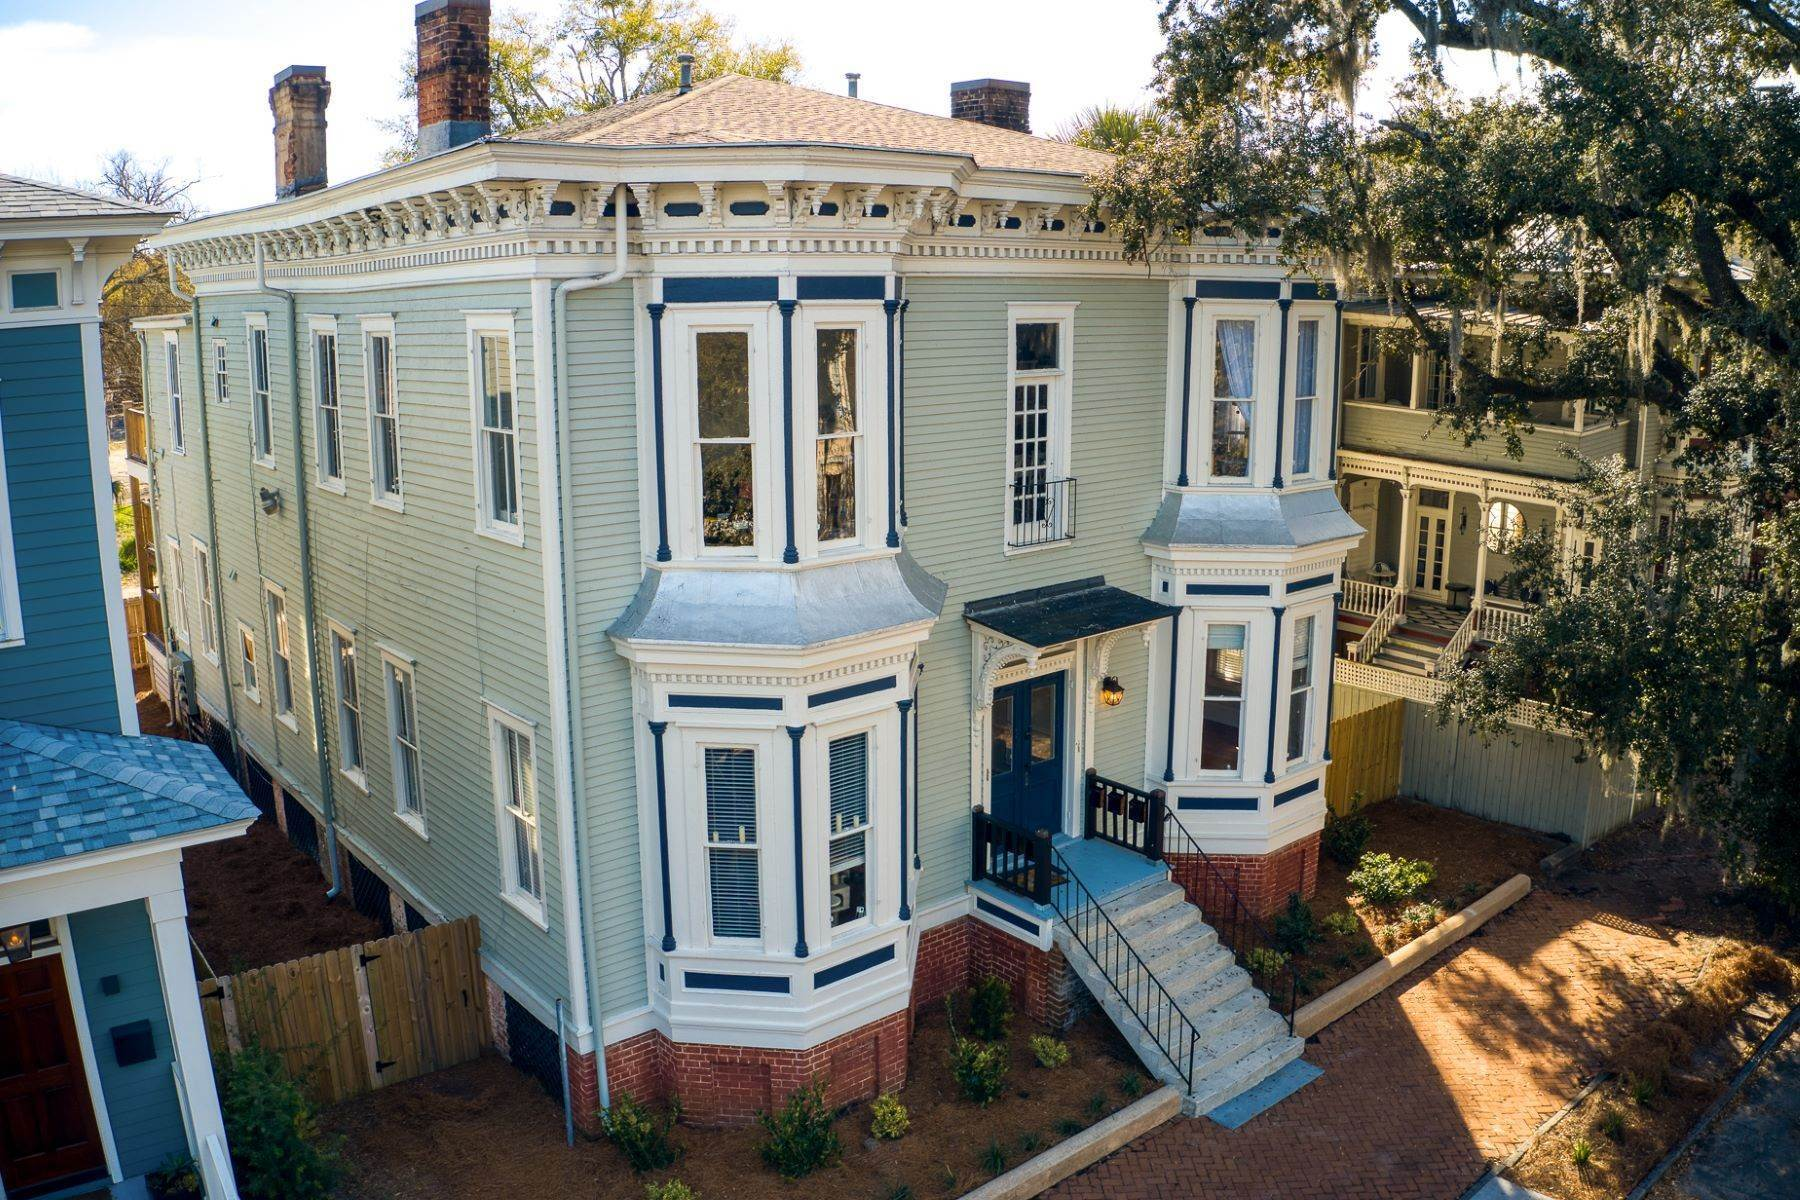 15. Property for Sale at Stunning Six Unit Victorian Apartment Building Near Forsyth Park 109 E Duffy Street Savannah, Georgia 31401 United States